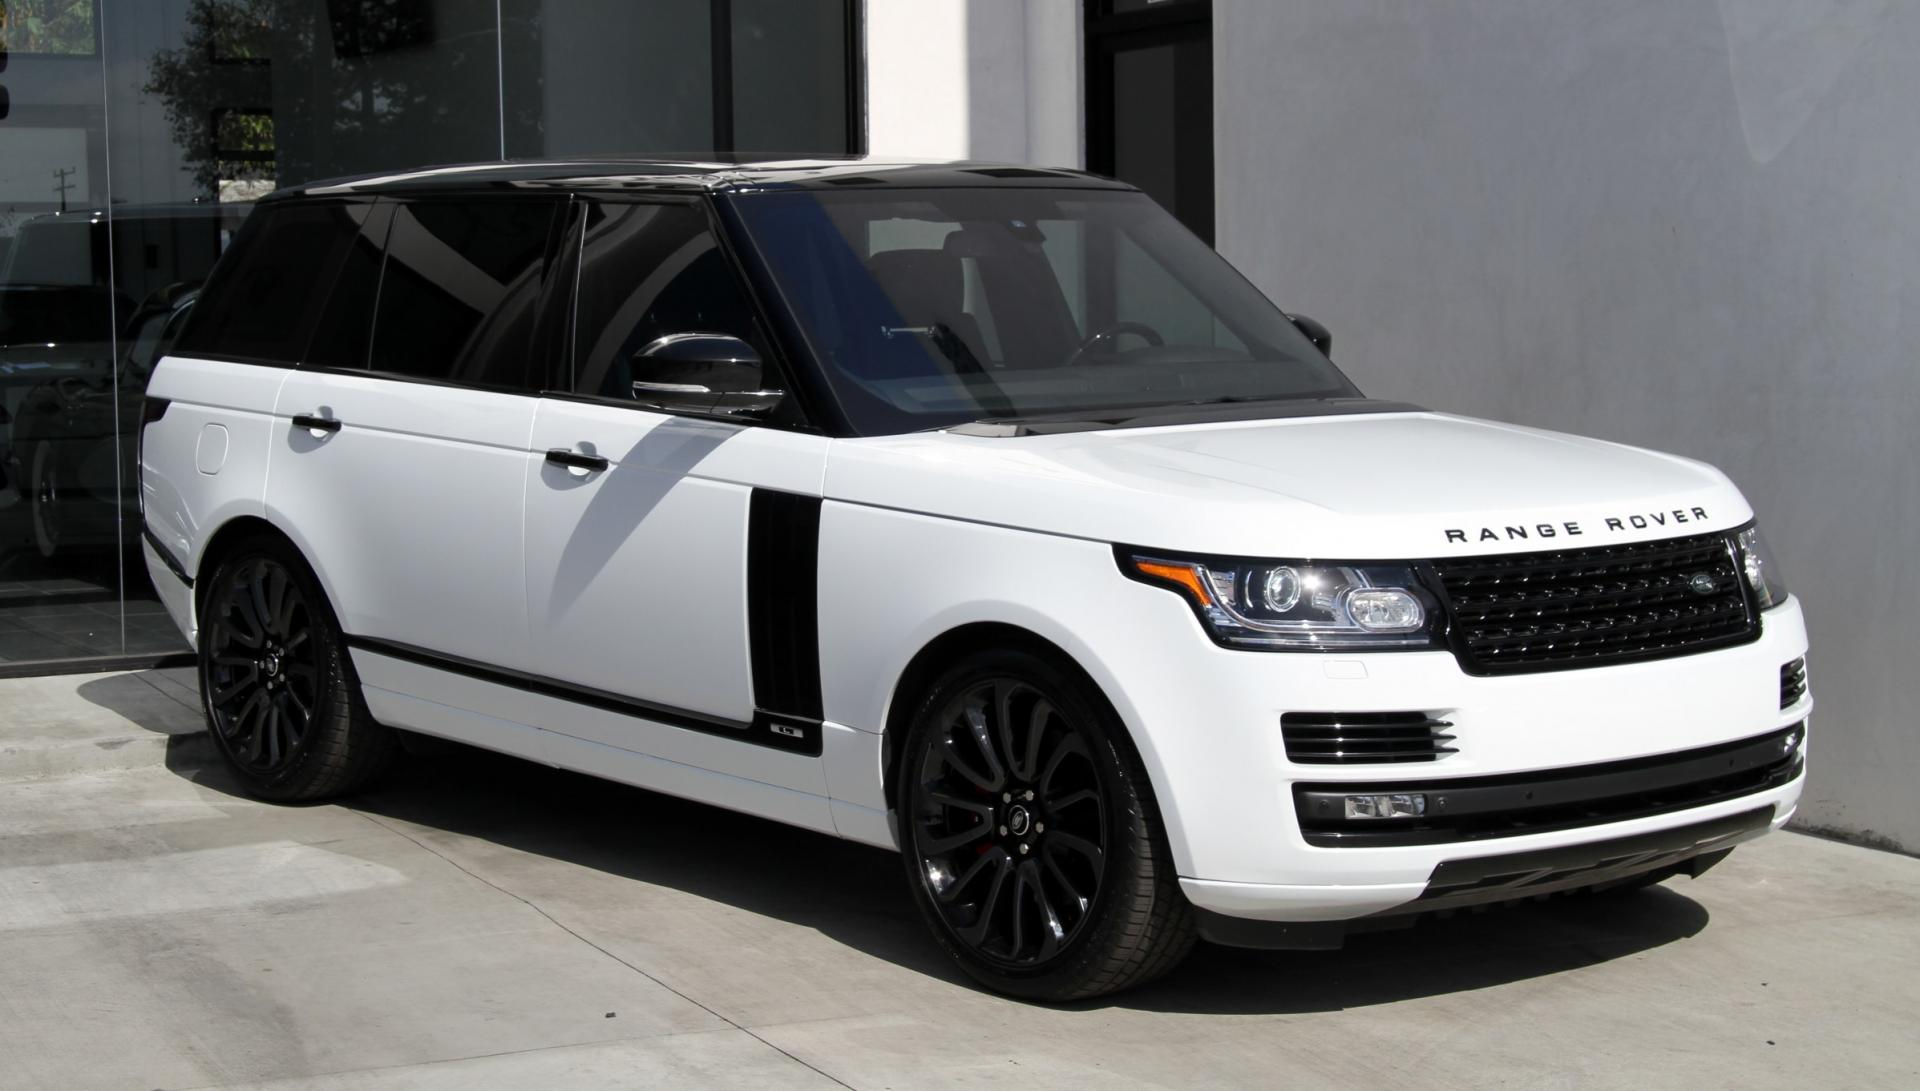 2015 land rover range rover supercharged long wheel base stock 6014 for sale near. Black Bedroom Furniture Sets. Home Design Ideas